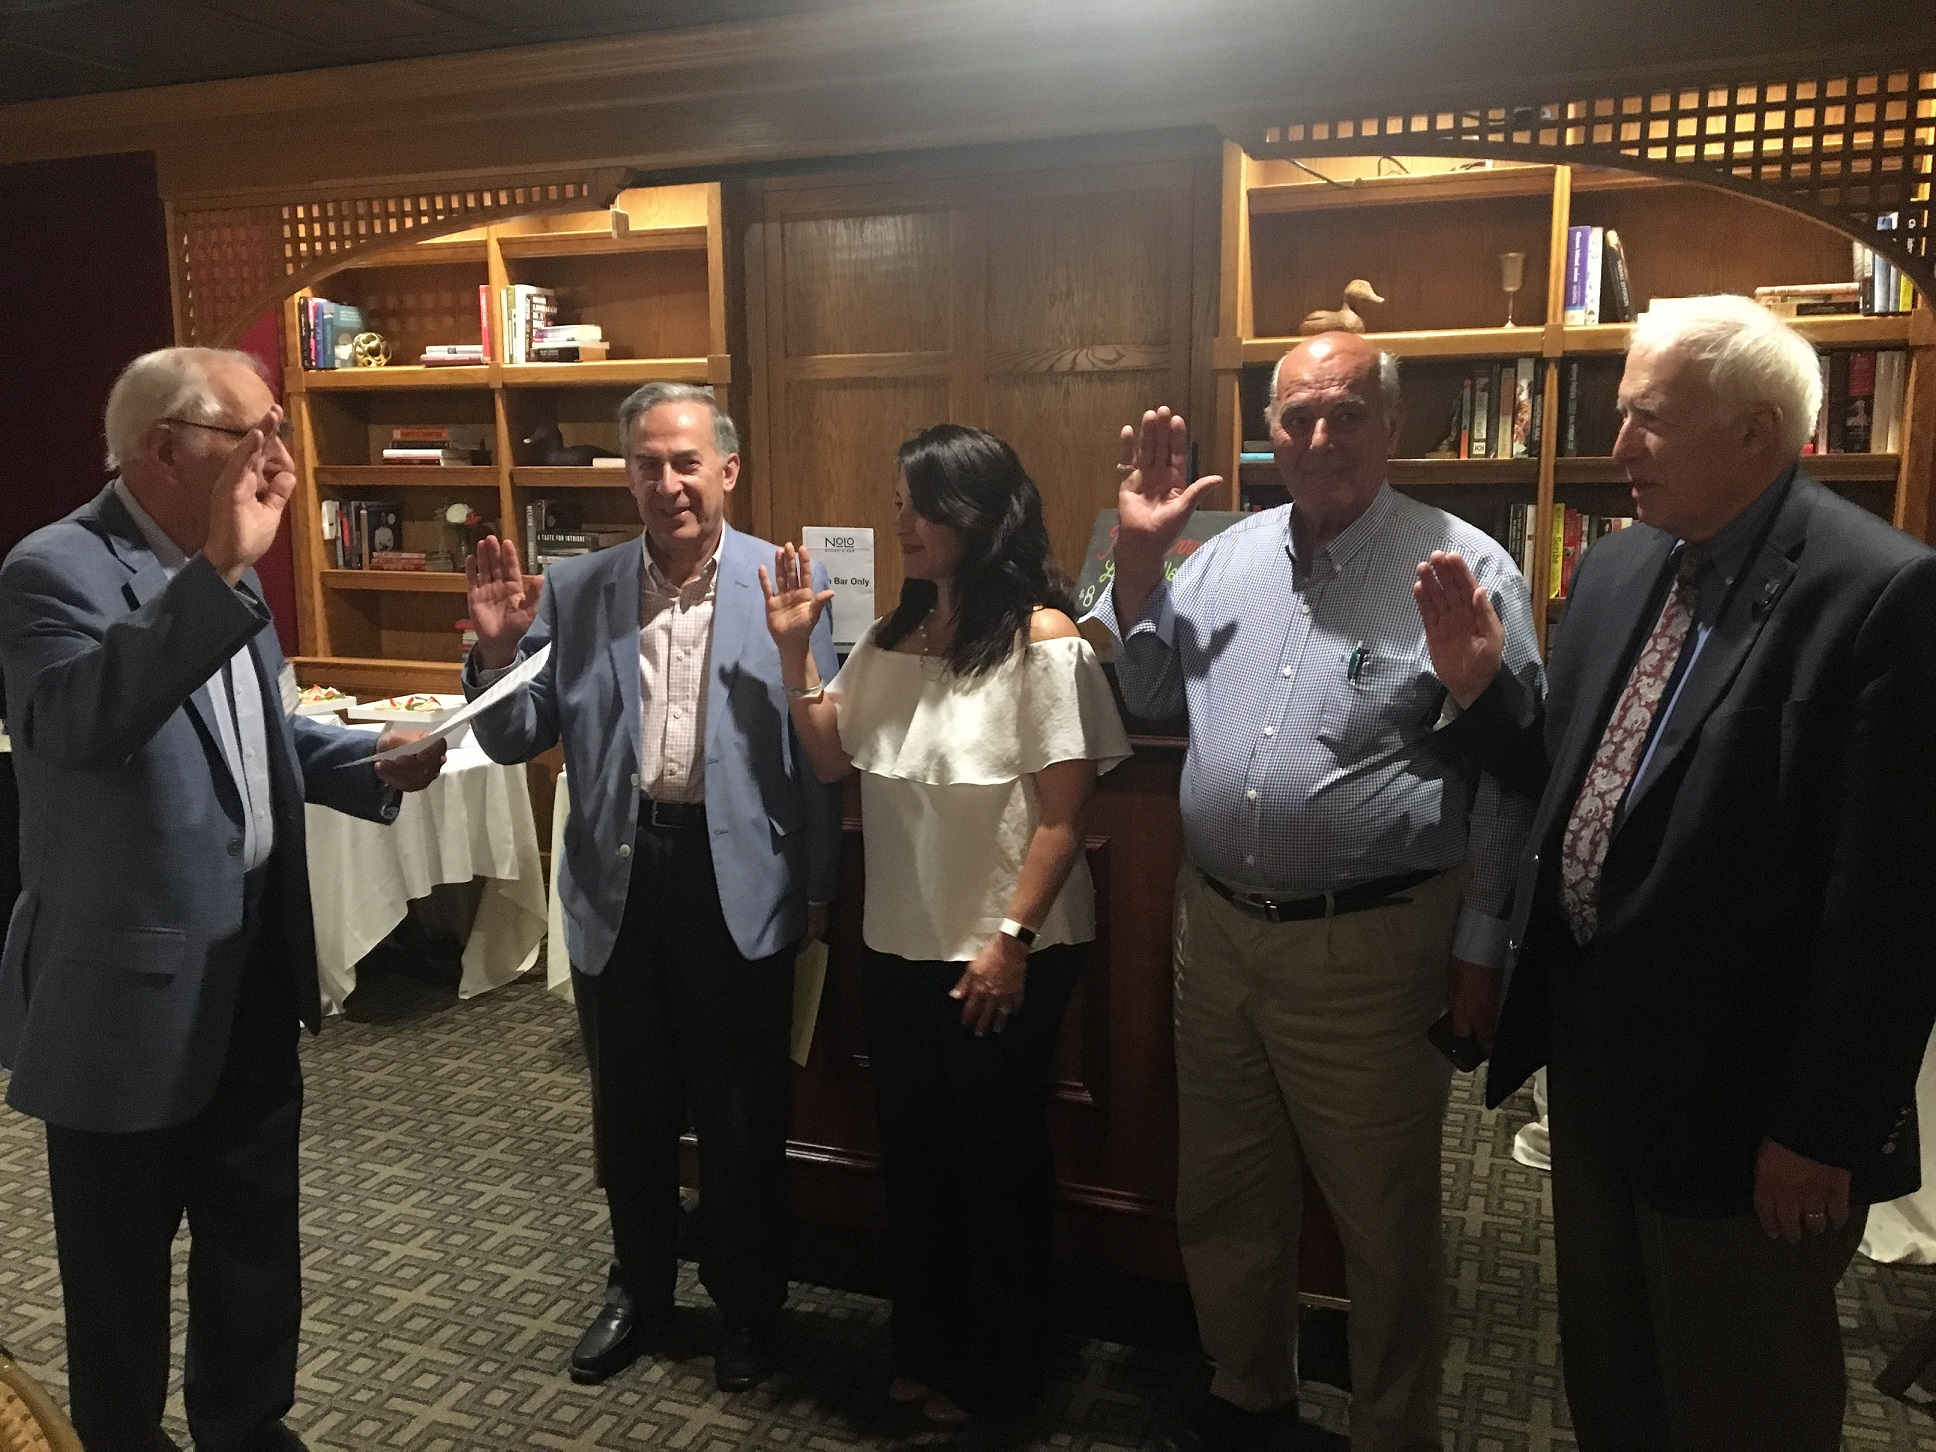 New members taking the oath by the Commander, Gus Plagianis at the June 9, 2018 meeting.